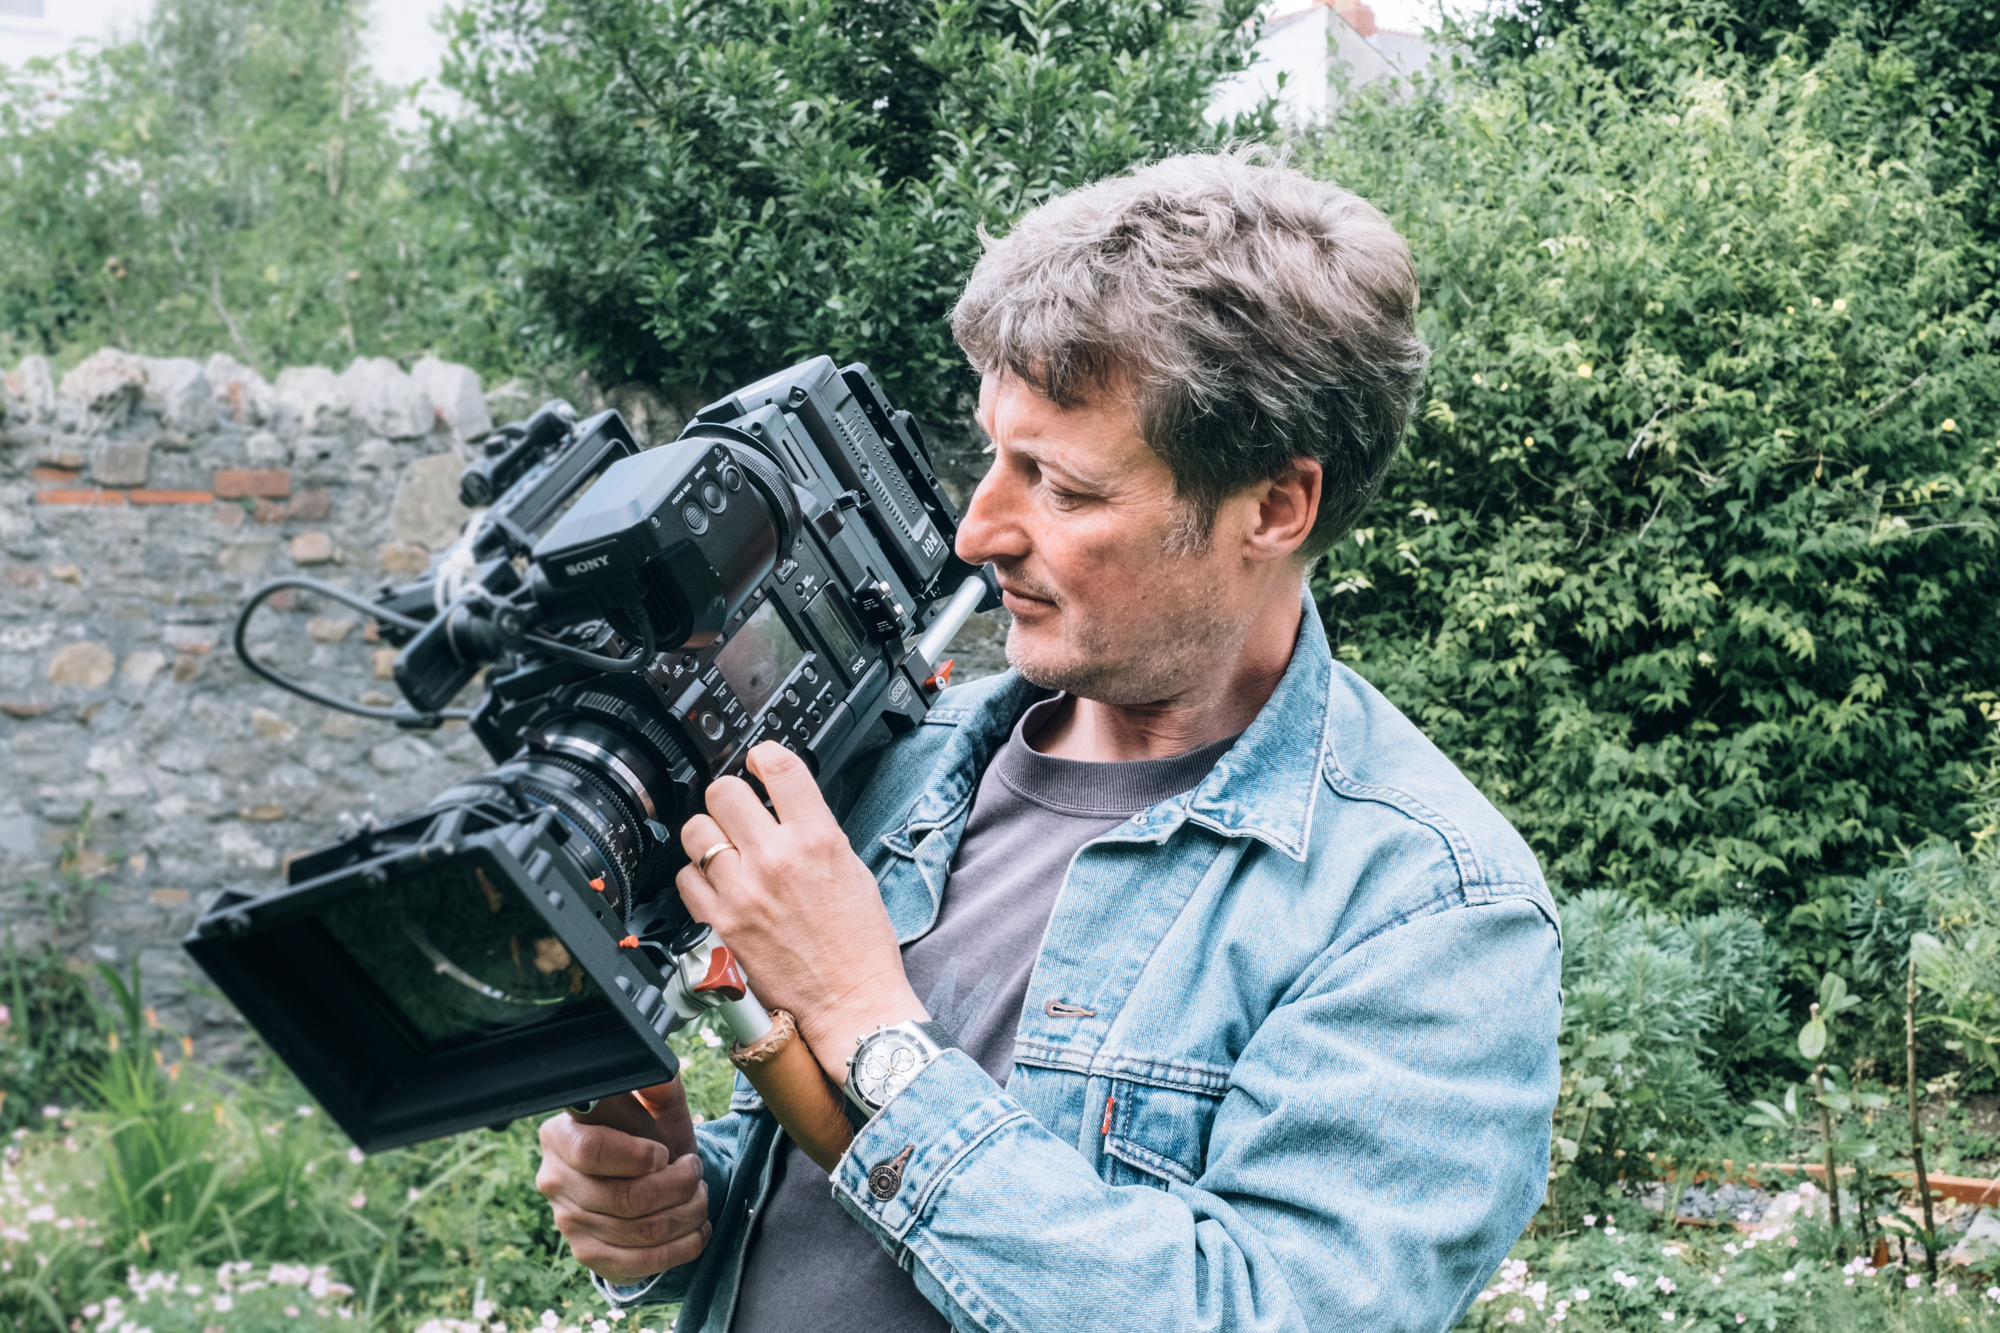 Aled with his daily filming tool - a Sony F5 4k camera